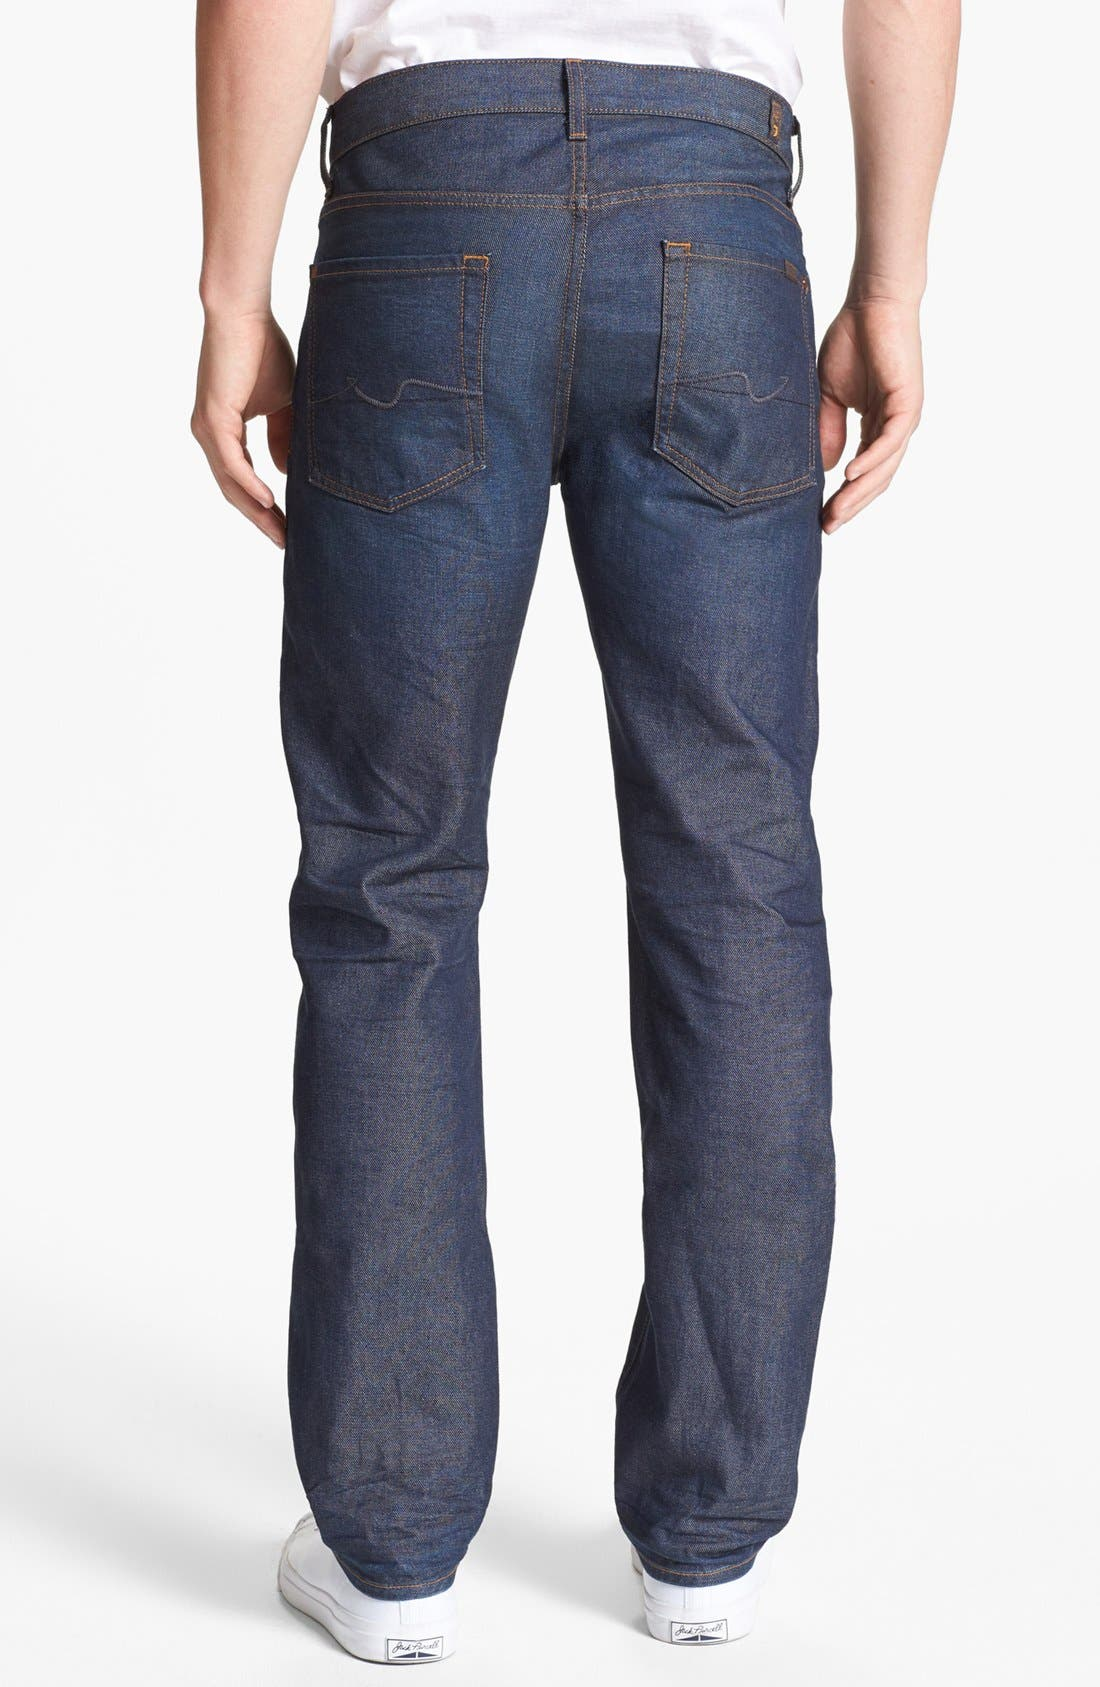 Alternate Image 1 Selected - 7 For All Mankind® 'Slimmy' Slim Fit Jeans (Copper River)